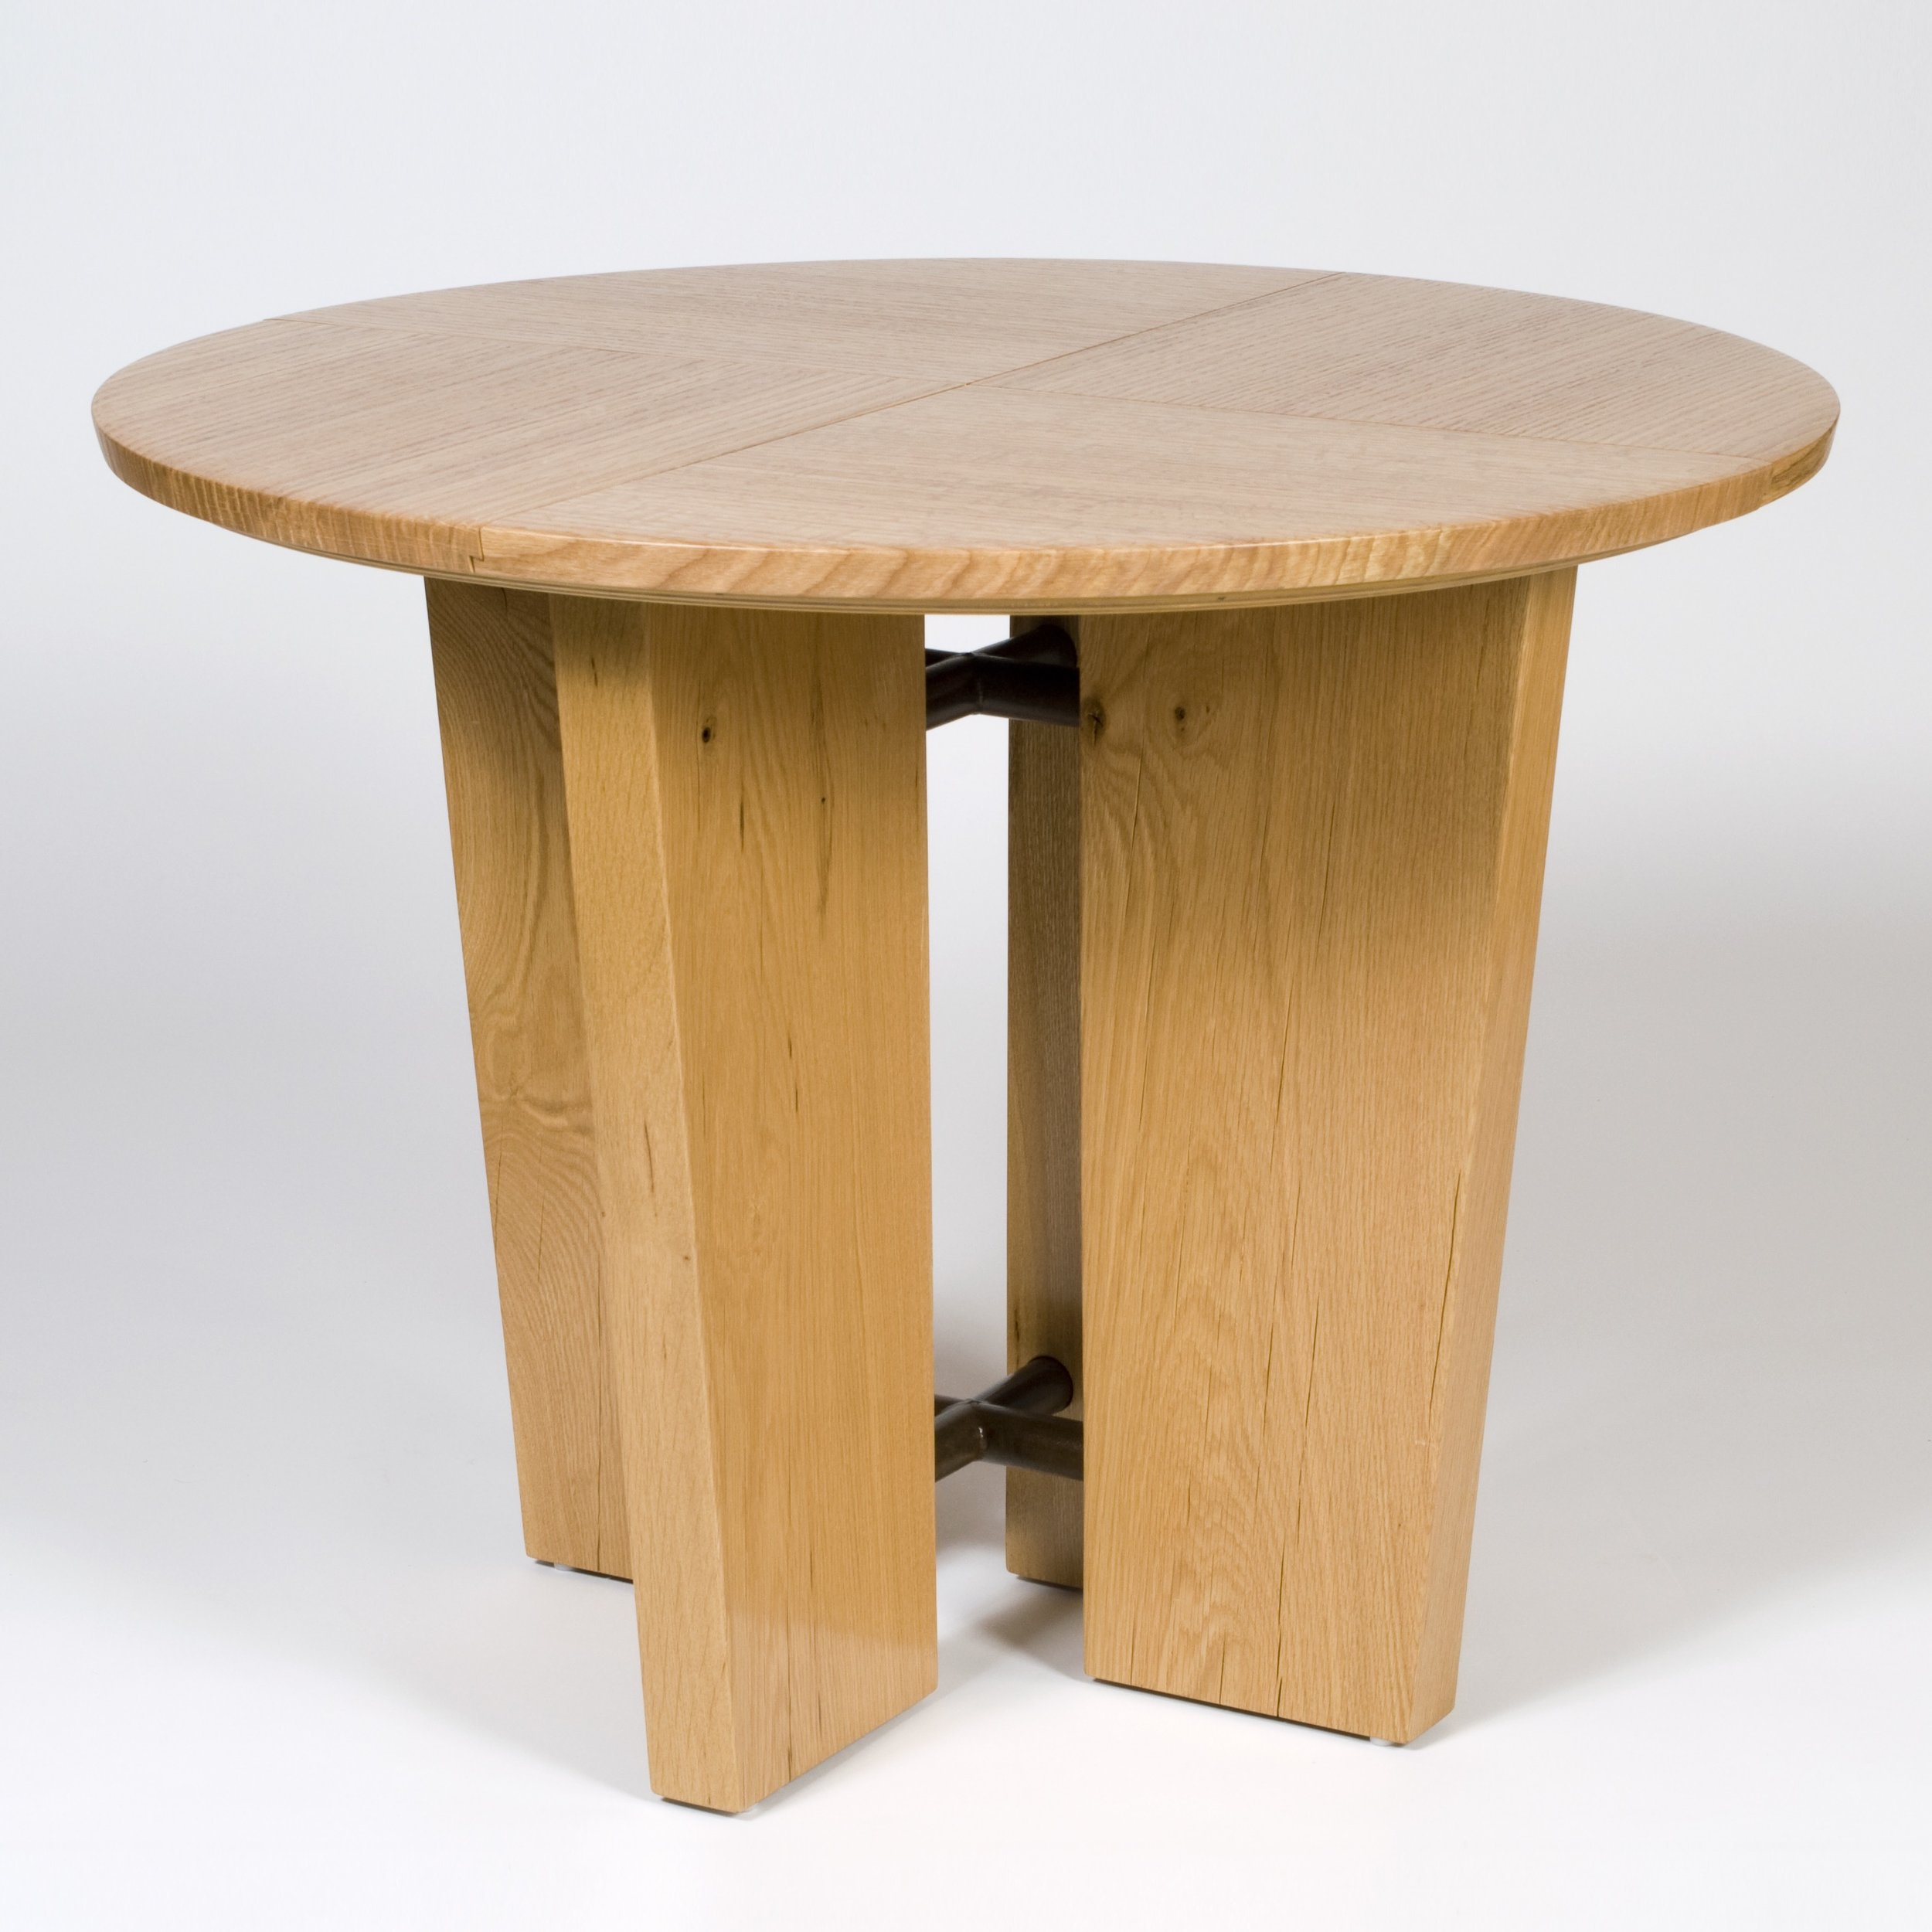 pin-oak-pinwheel-table-001.jpg